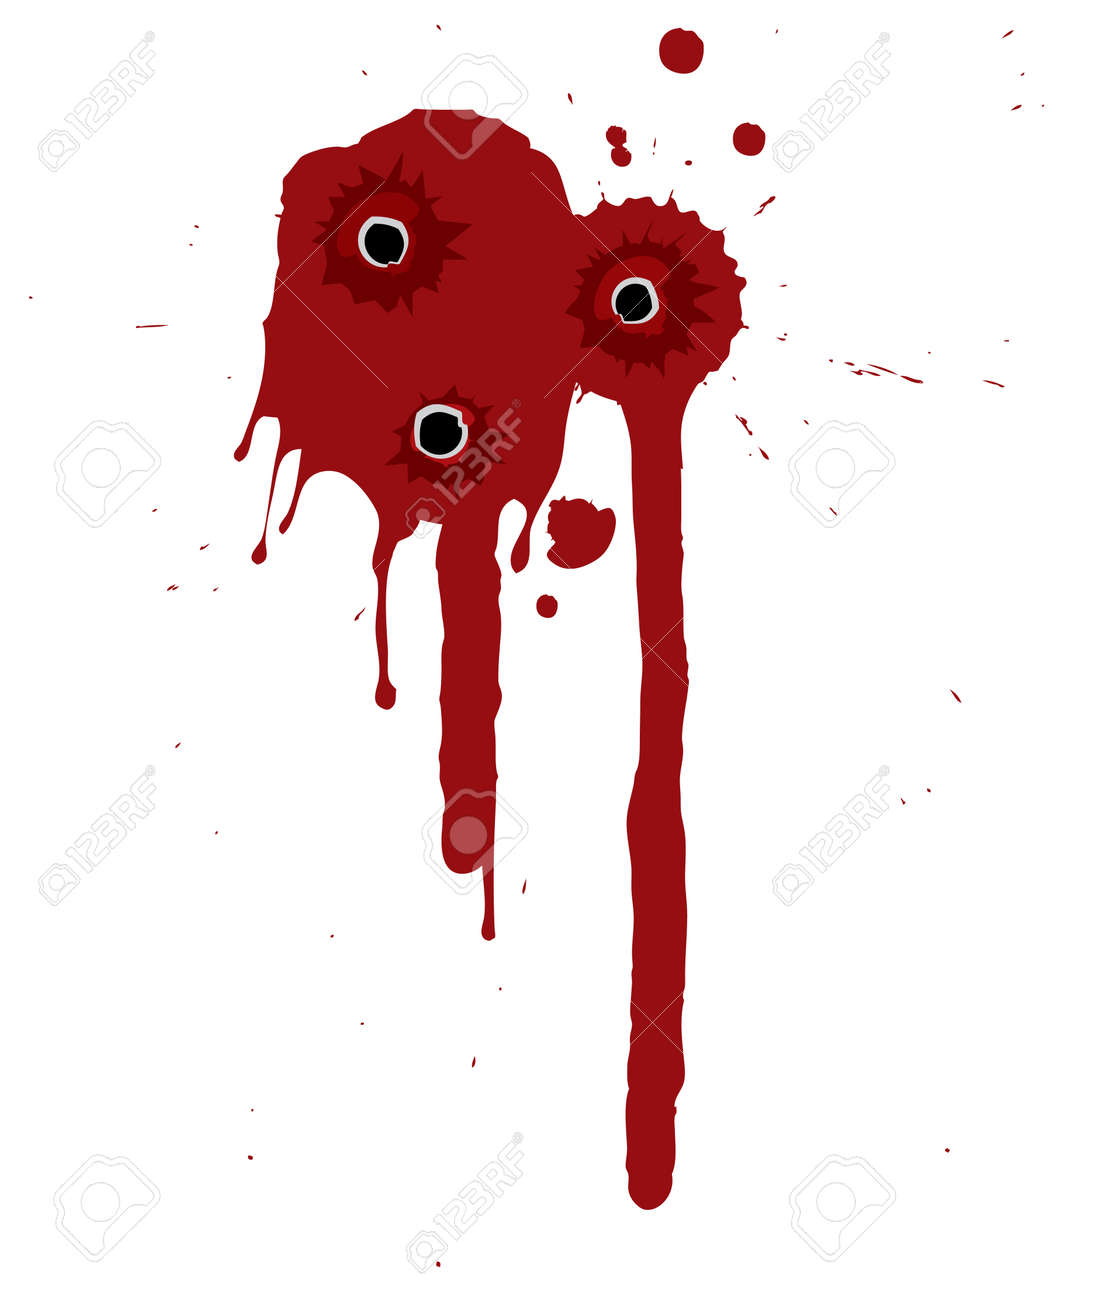 Splattered blood pattern with drips and shotgun holes - 5852378